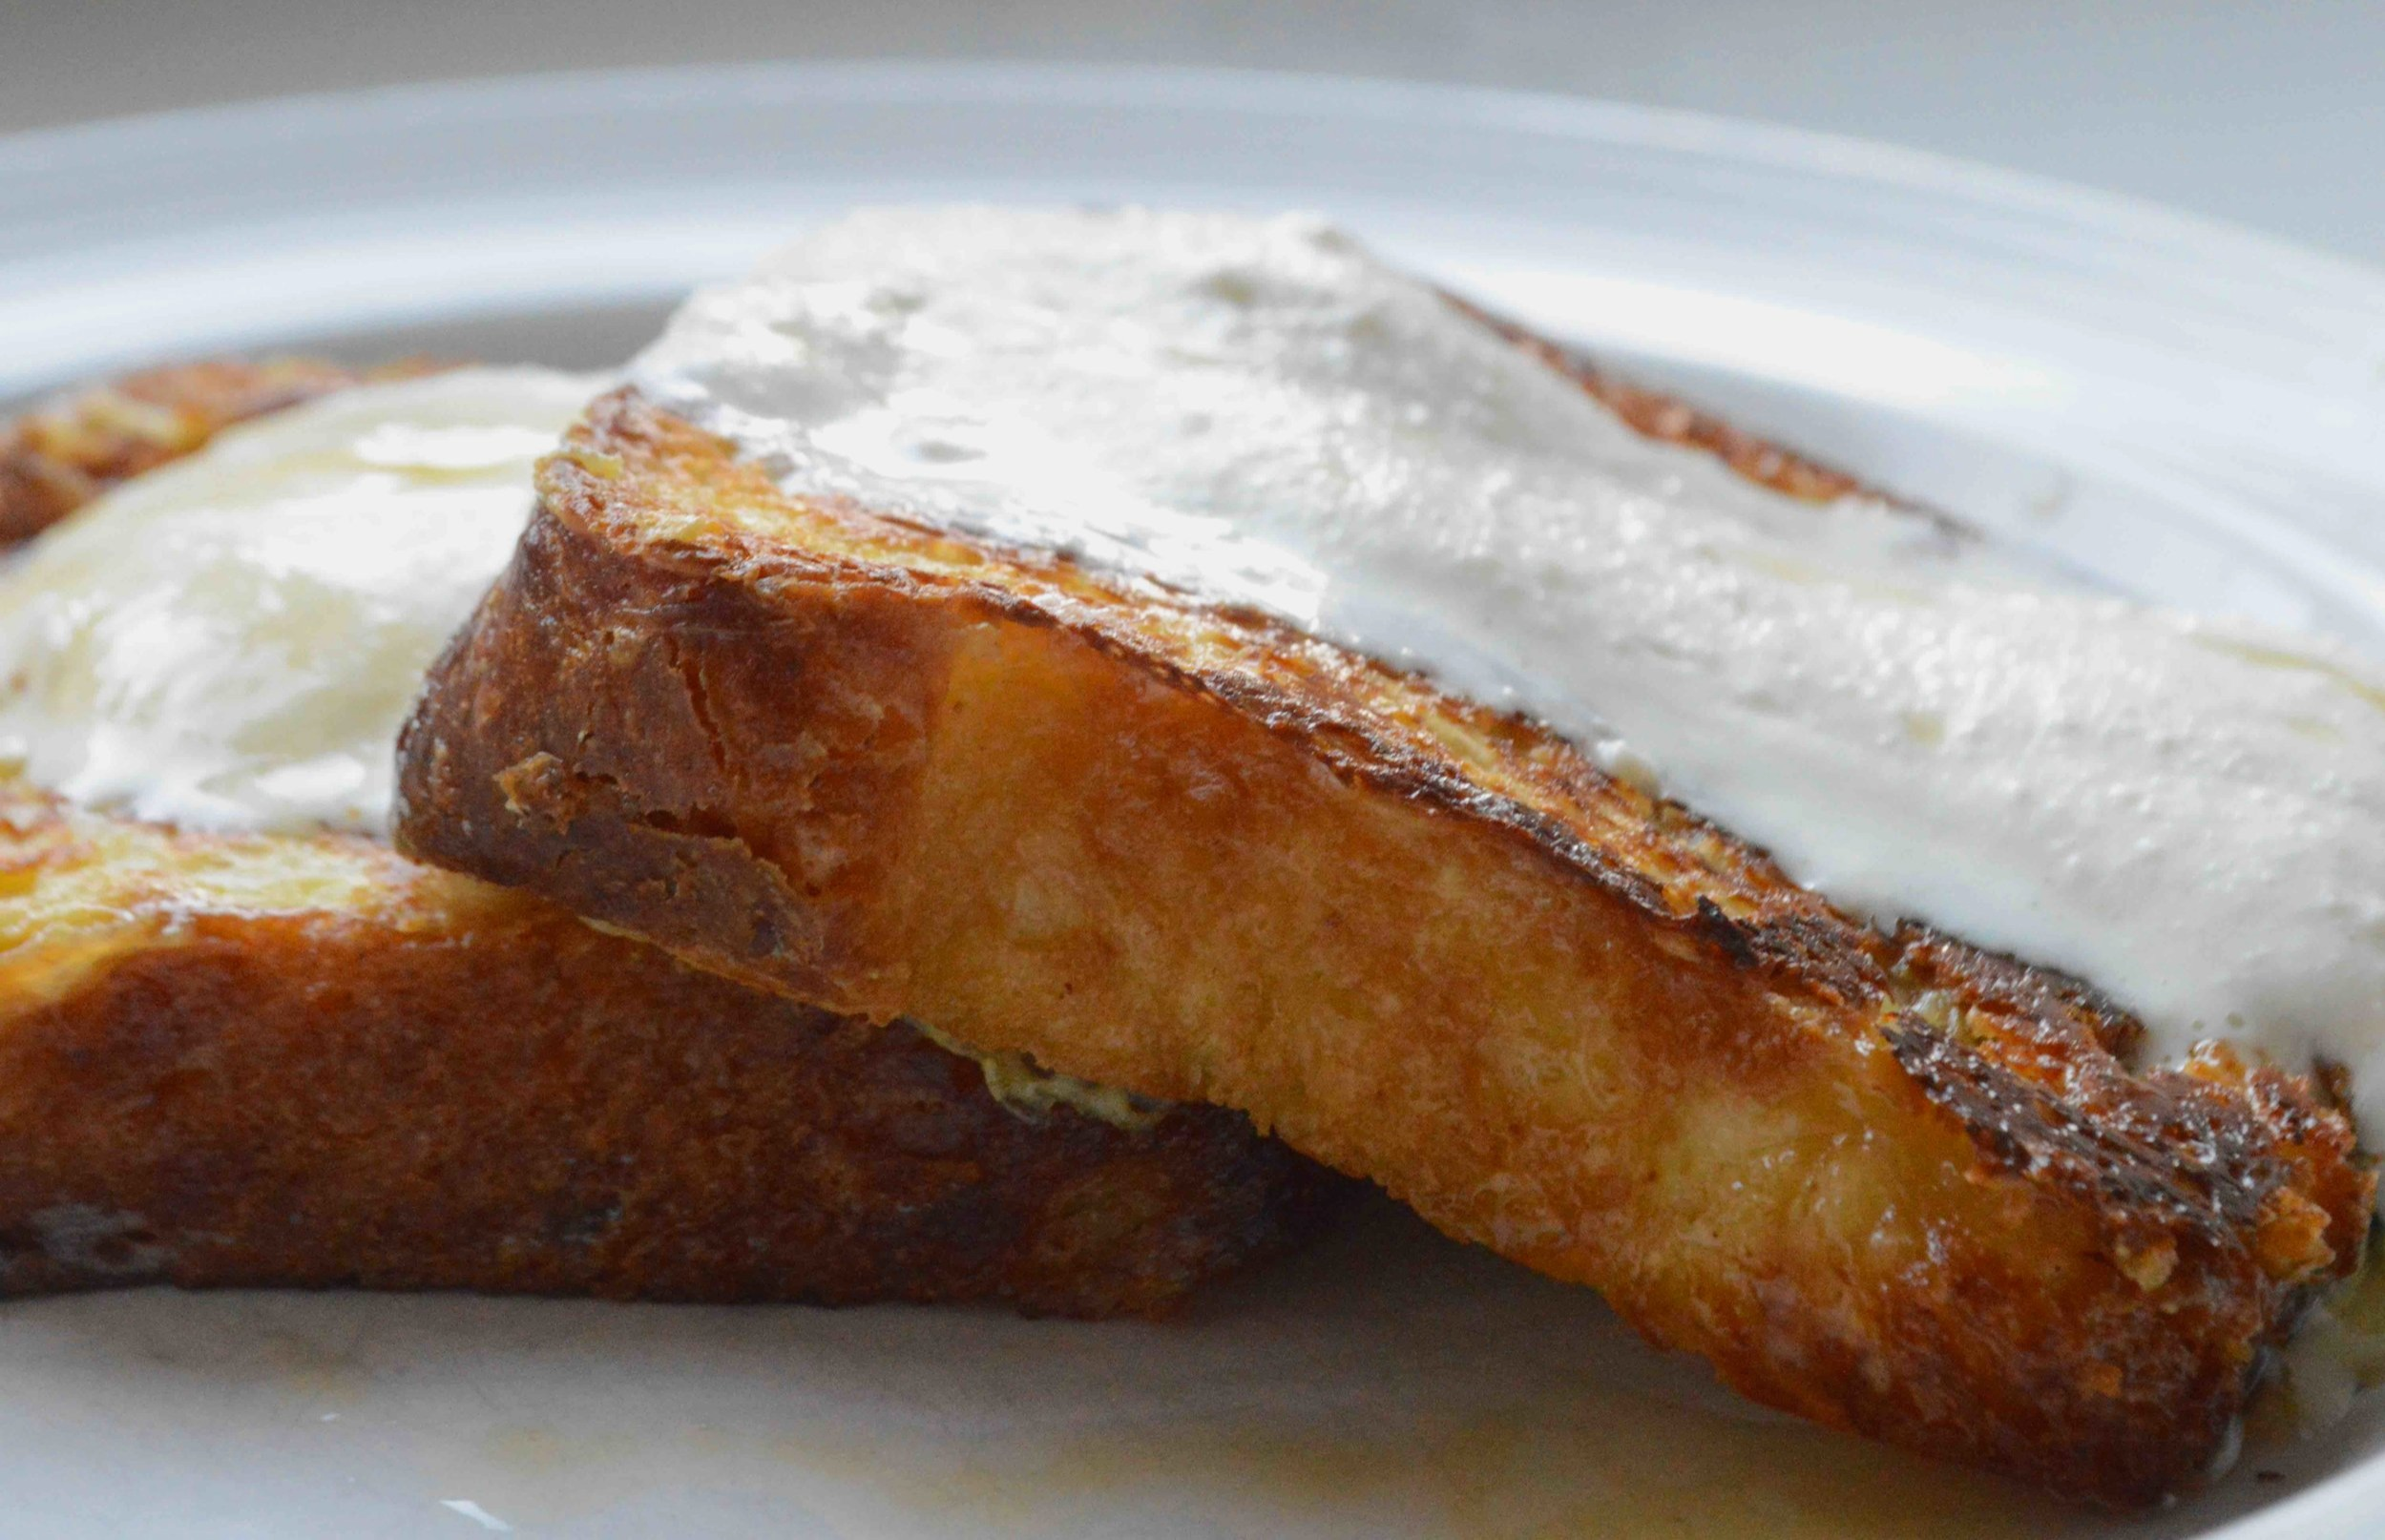 French+Toast+with+Whipped+Honey+Ricotta+Topping